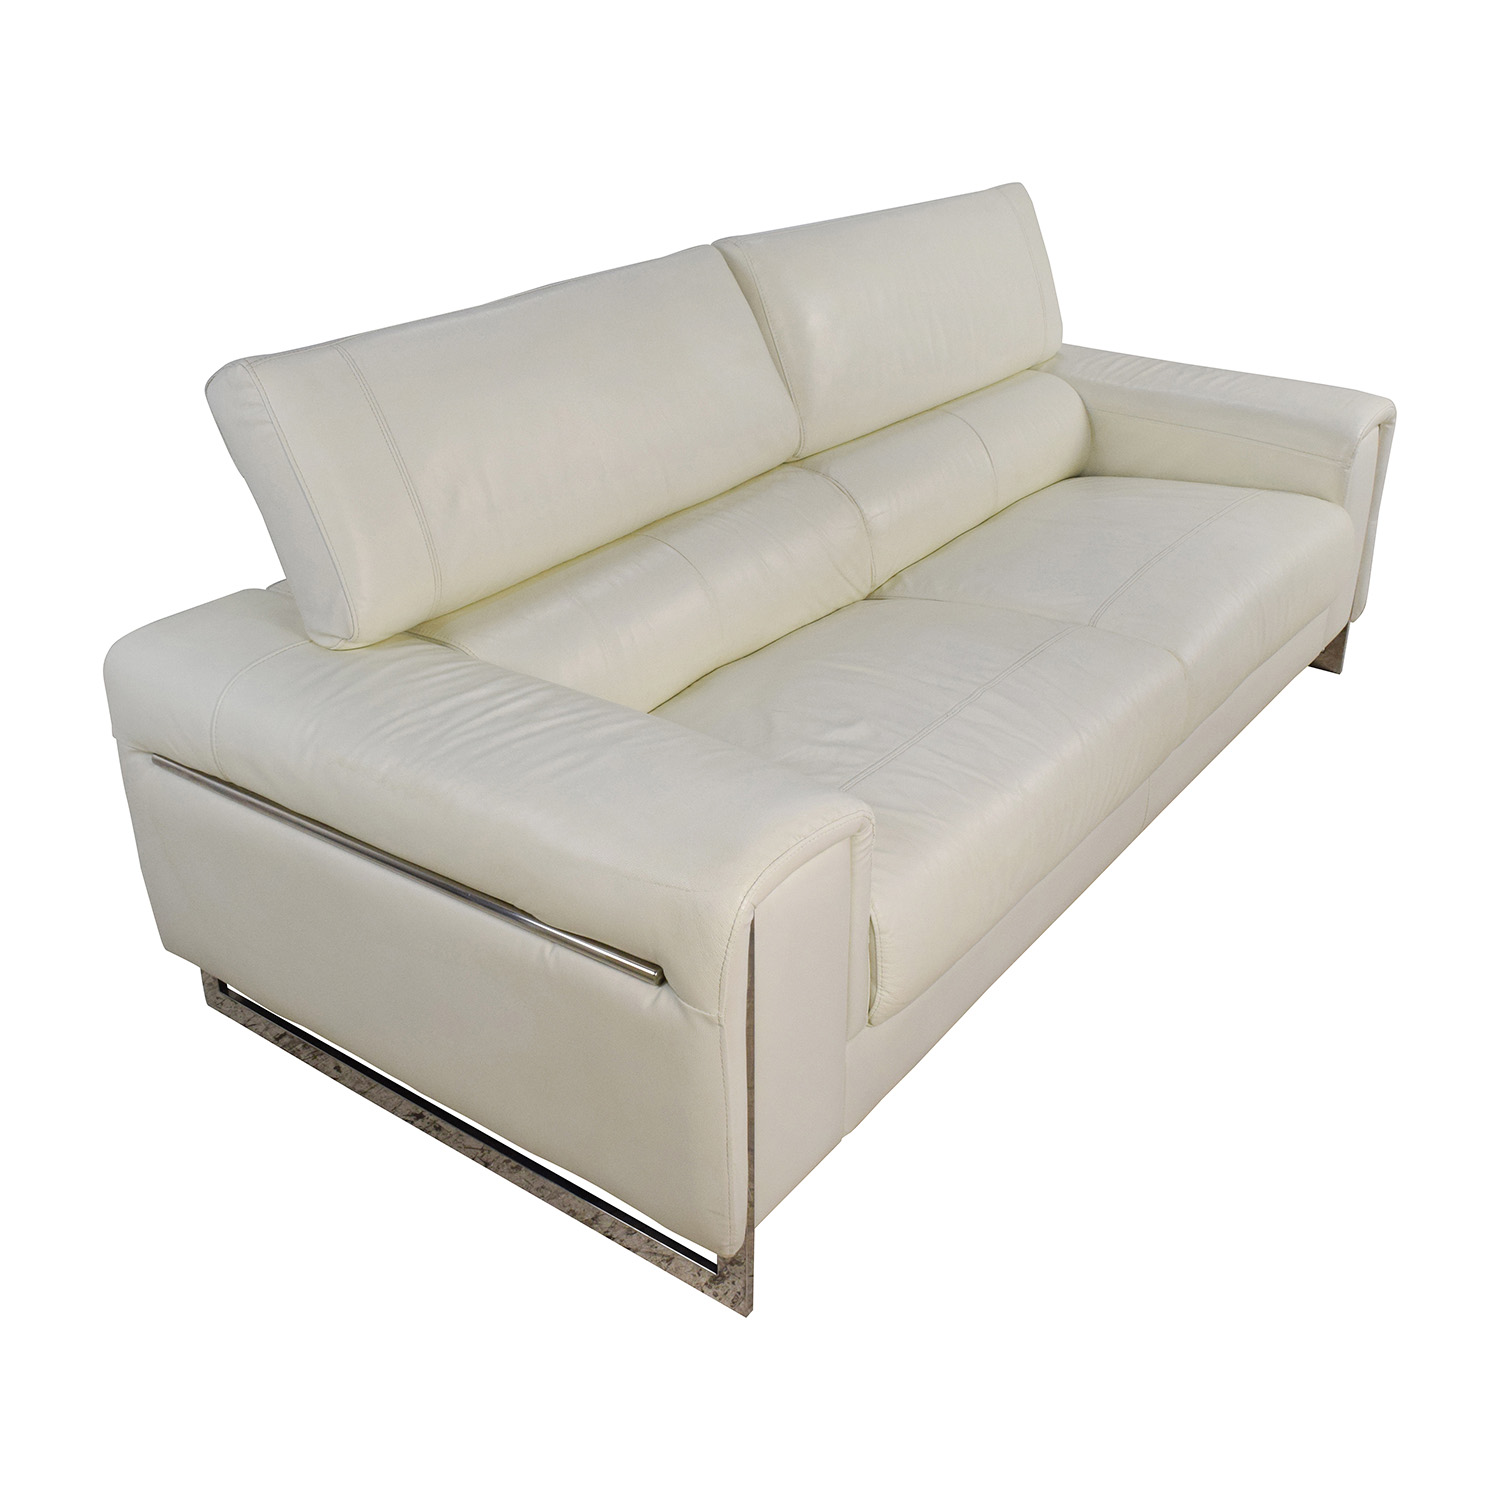 64 off jnm j m soho white leather sofa sofas. Black Bedroom Furniture Sets. Home Design Ideas